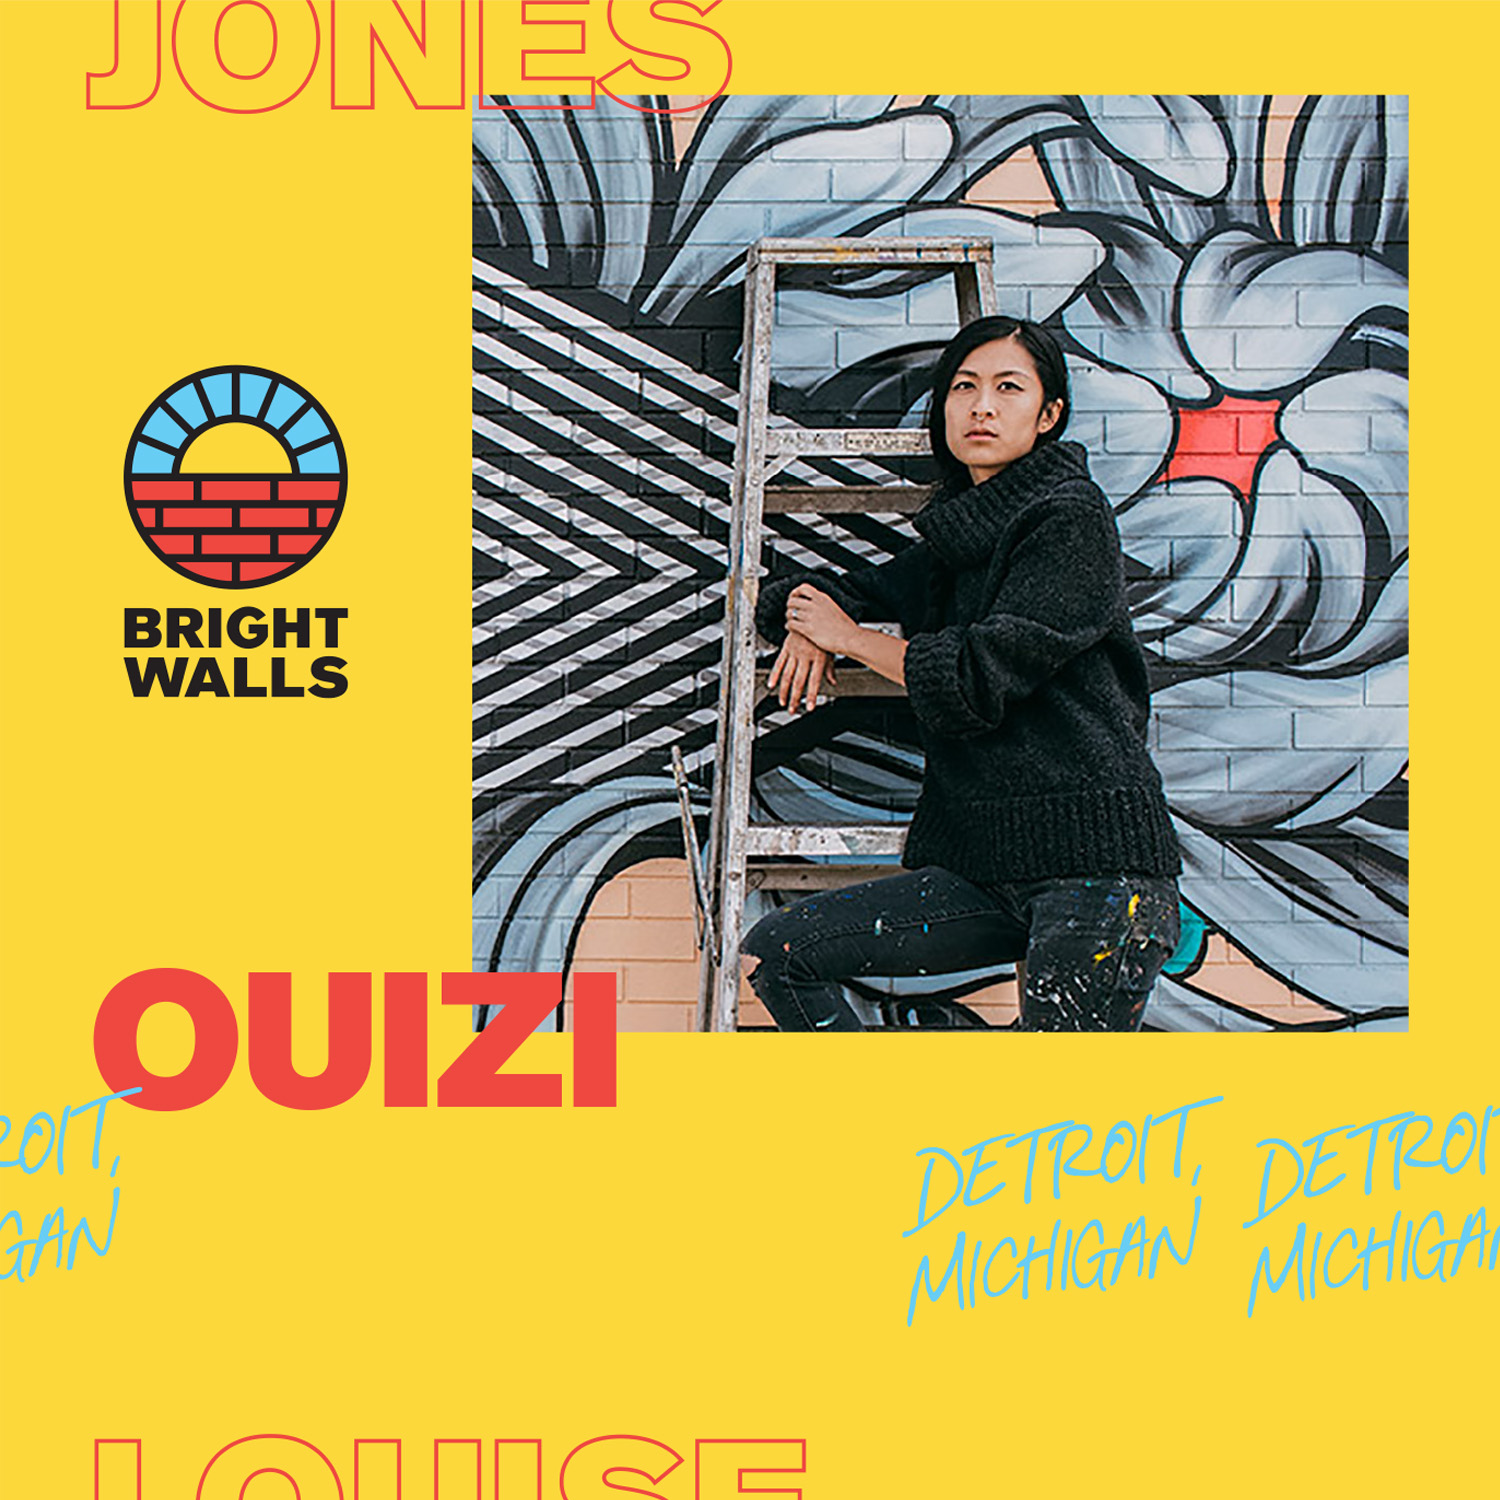 "OuiziDetroit, Michigan - Back by popular demand this year, Ouizi!Louise ""Ouizi"" Jones (formerly Chen) was born and raised in Los Angeles to Shanghainese parents. Her enormous site-specific floral murals can be seen in public spaces throughout the United States, from museums to public parks.Her background in drawing and printmaking uniquely informs her mural techniques and her style is deeply influenced by her Chinese background. Her obsession with flowers continues to grow, stemming from an early introduction to Georgia O'Keeffe and fond memories of picking figs with her grandmother.Louise has worked with many brands and organizations including Shinola, Lululemon, Smithsonian, Movement Detroit, Grand Rapids Ballet and more. She currently lives and works in Detroit.Mural Partner: Consumers Energy"